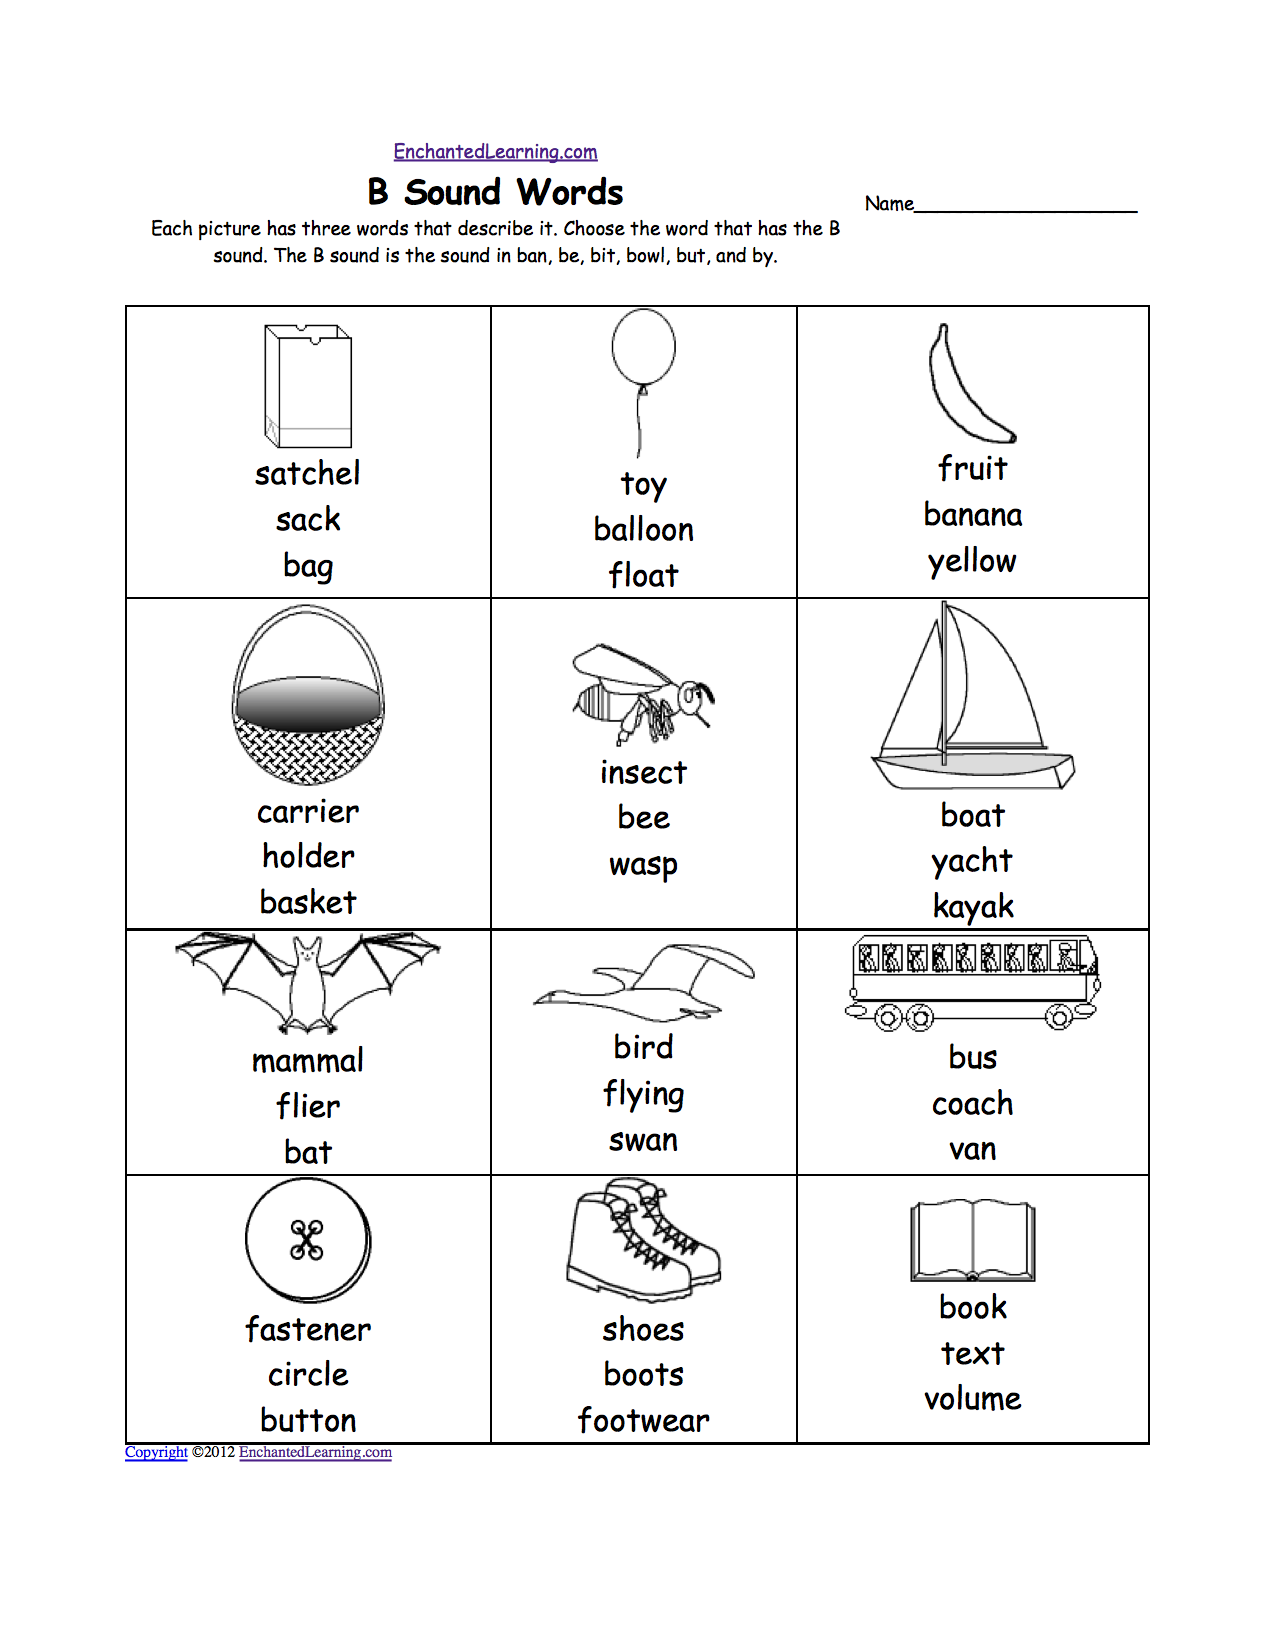 Proatmealus  Personable Phonics Worksheets Multiple Choice Worksheets To Print  With Entrancing Quotbquot Sound Phonics Worksheet Multiple Choice Each Picture Has Three Words That Describe It Choose The Word That Has A Quotbquot Sound The Quotbquot Sound Is The Sound  With Divine Printable Piano Theory Worksheets Also Medical Terminology Worksheets In Addition Th Grade Reading Comprehension Worksheet And Changing Fractions To Decimals Worksheets As Well As Note Taking Worksheet Energy Answers Additionally Biogeochemical Cycles Review Worksheet From Enchantedlearningcom With Proatmealus  Entrancing Phonics Worksheets Multiple Choice Worksheets To Print  With Divine Quotbquot Sound Phonics Worksheet Multiple Choice Each Picture Has Three Words That Describe It Choose The Word That Has A Quotbquot Sound The Quotbquot Sound Is The Sound  And Personable Printable Piano Theory Worksheets Also Medical Terminology Worksheets In Addition Th Grade Reading Comprehension Worksheet From Enchantedlearningcom